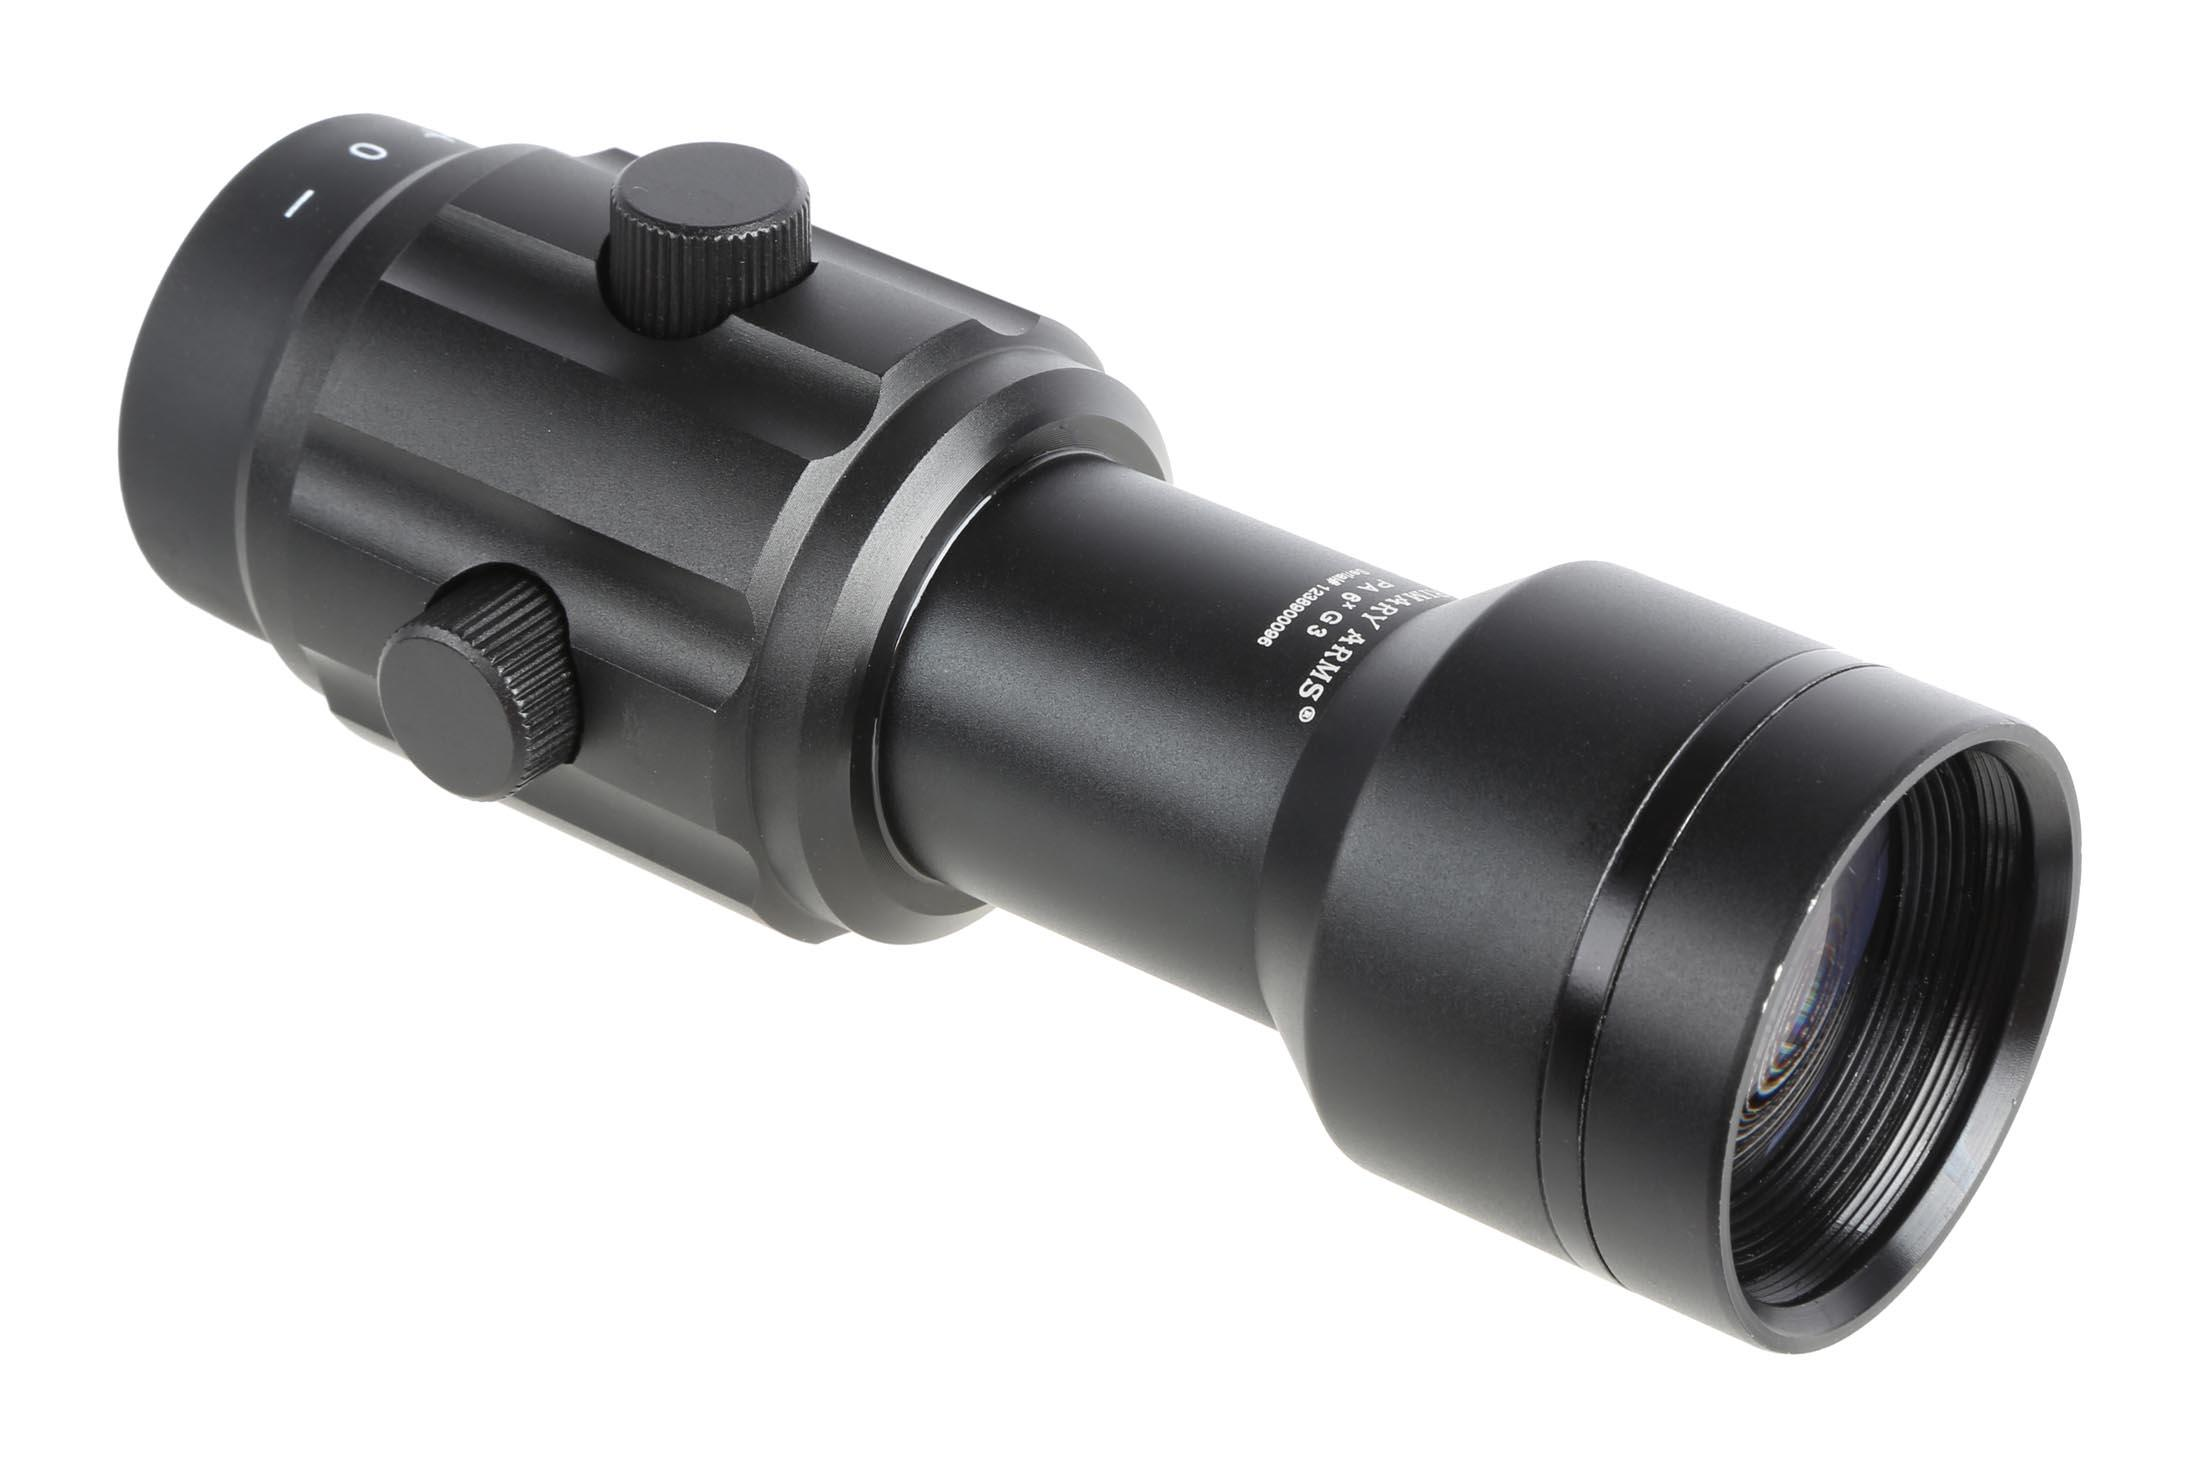 The Primary Arms 6x Magnifier is made from aluminum with anodized black finish